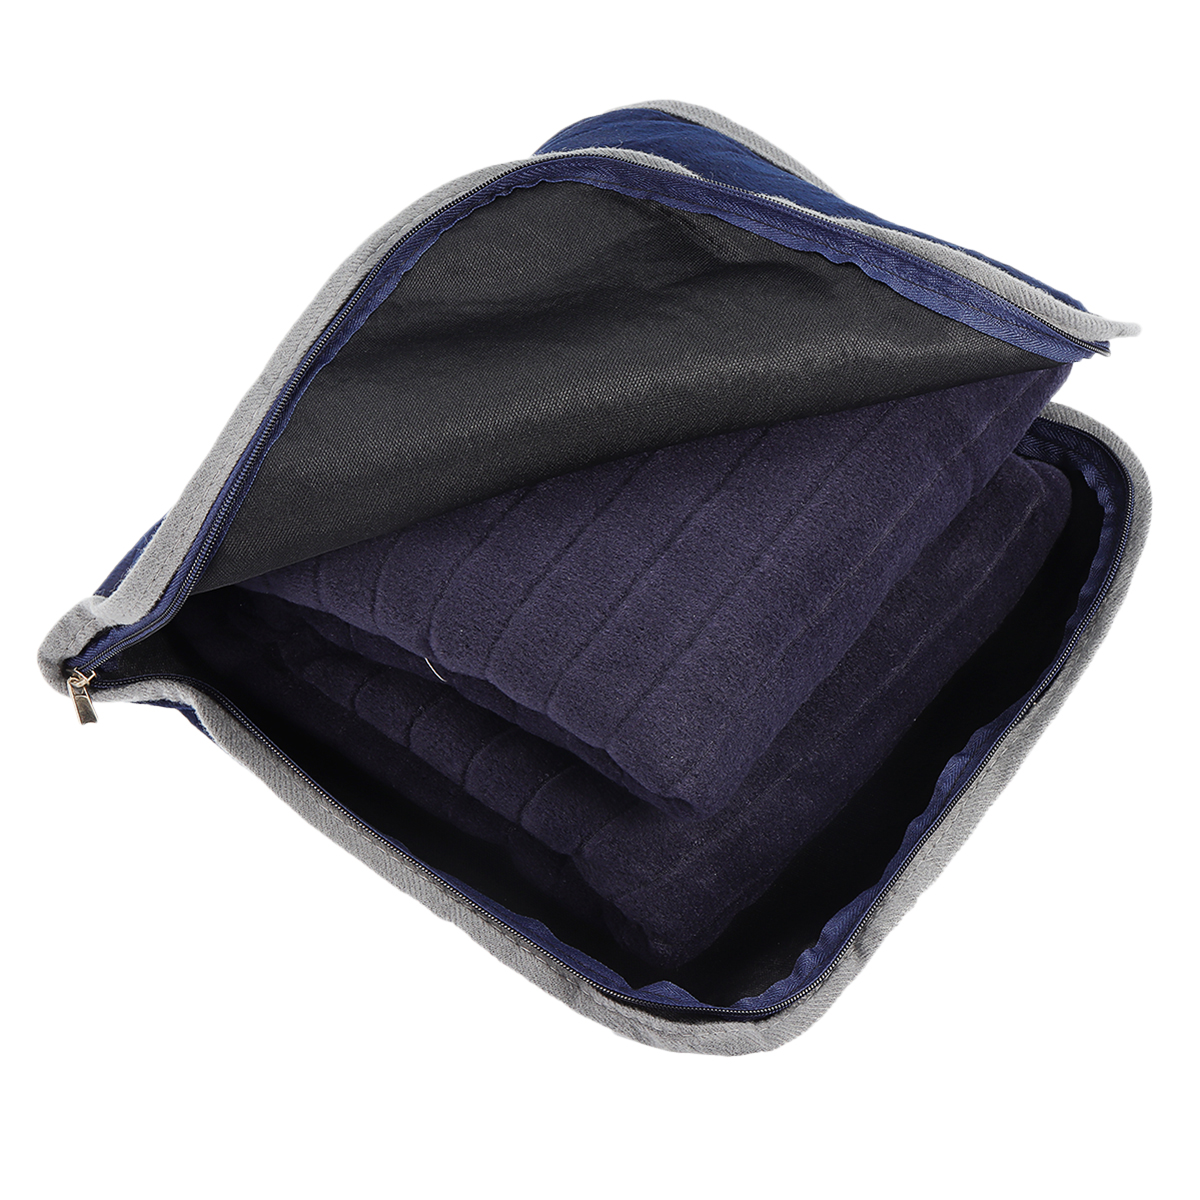 Navy Blue Warm Plush Machine Washable Blankets For Bed Throw Travel or Home